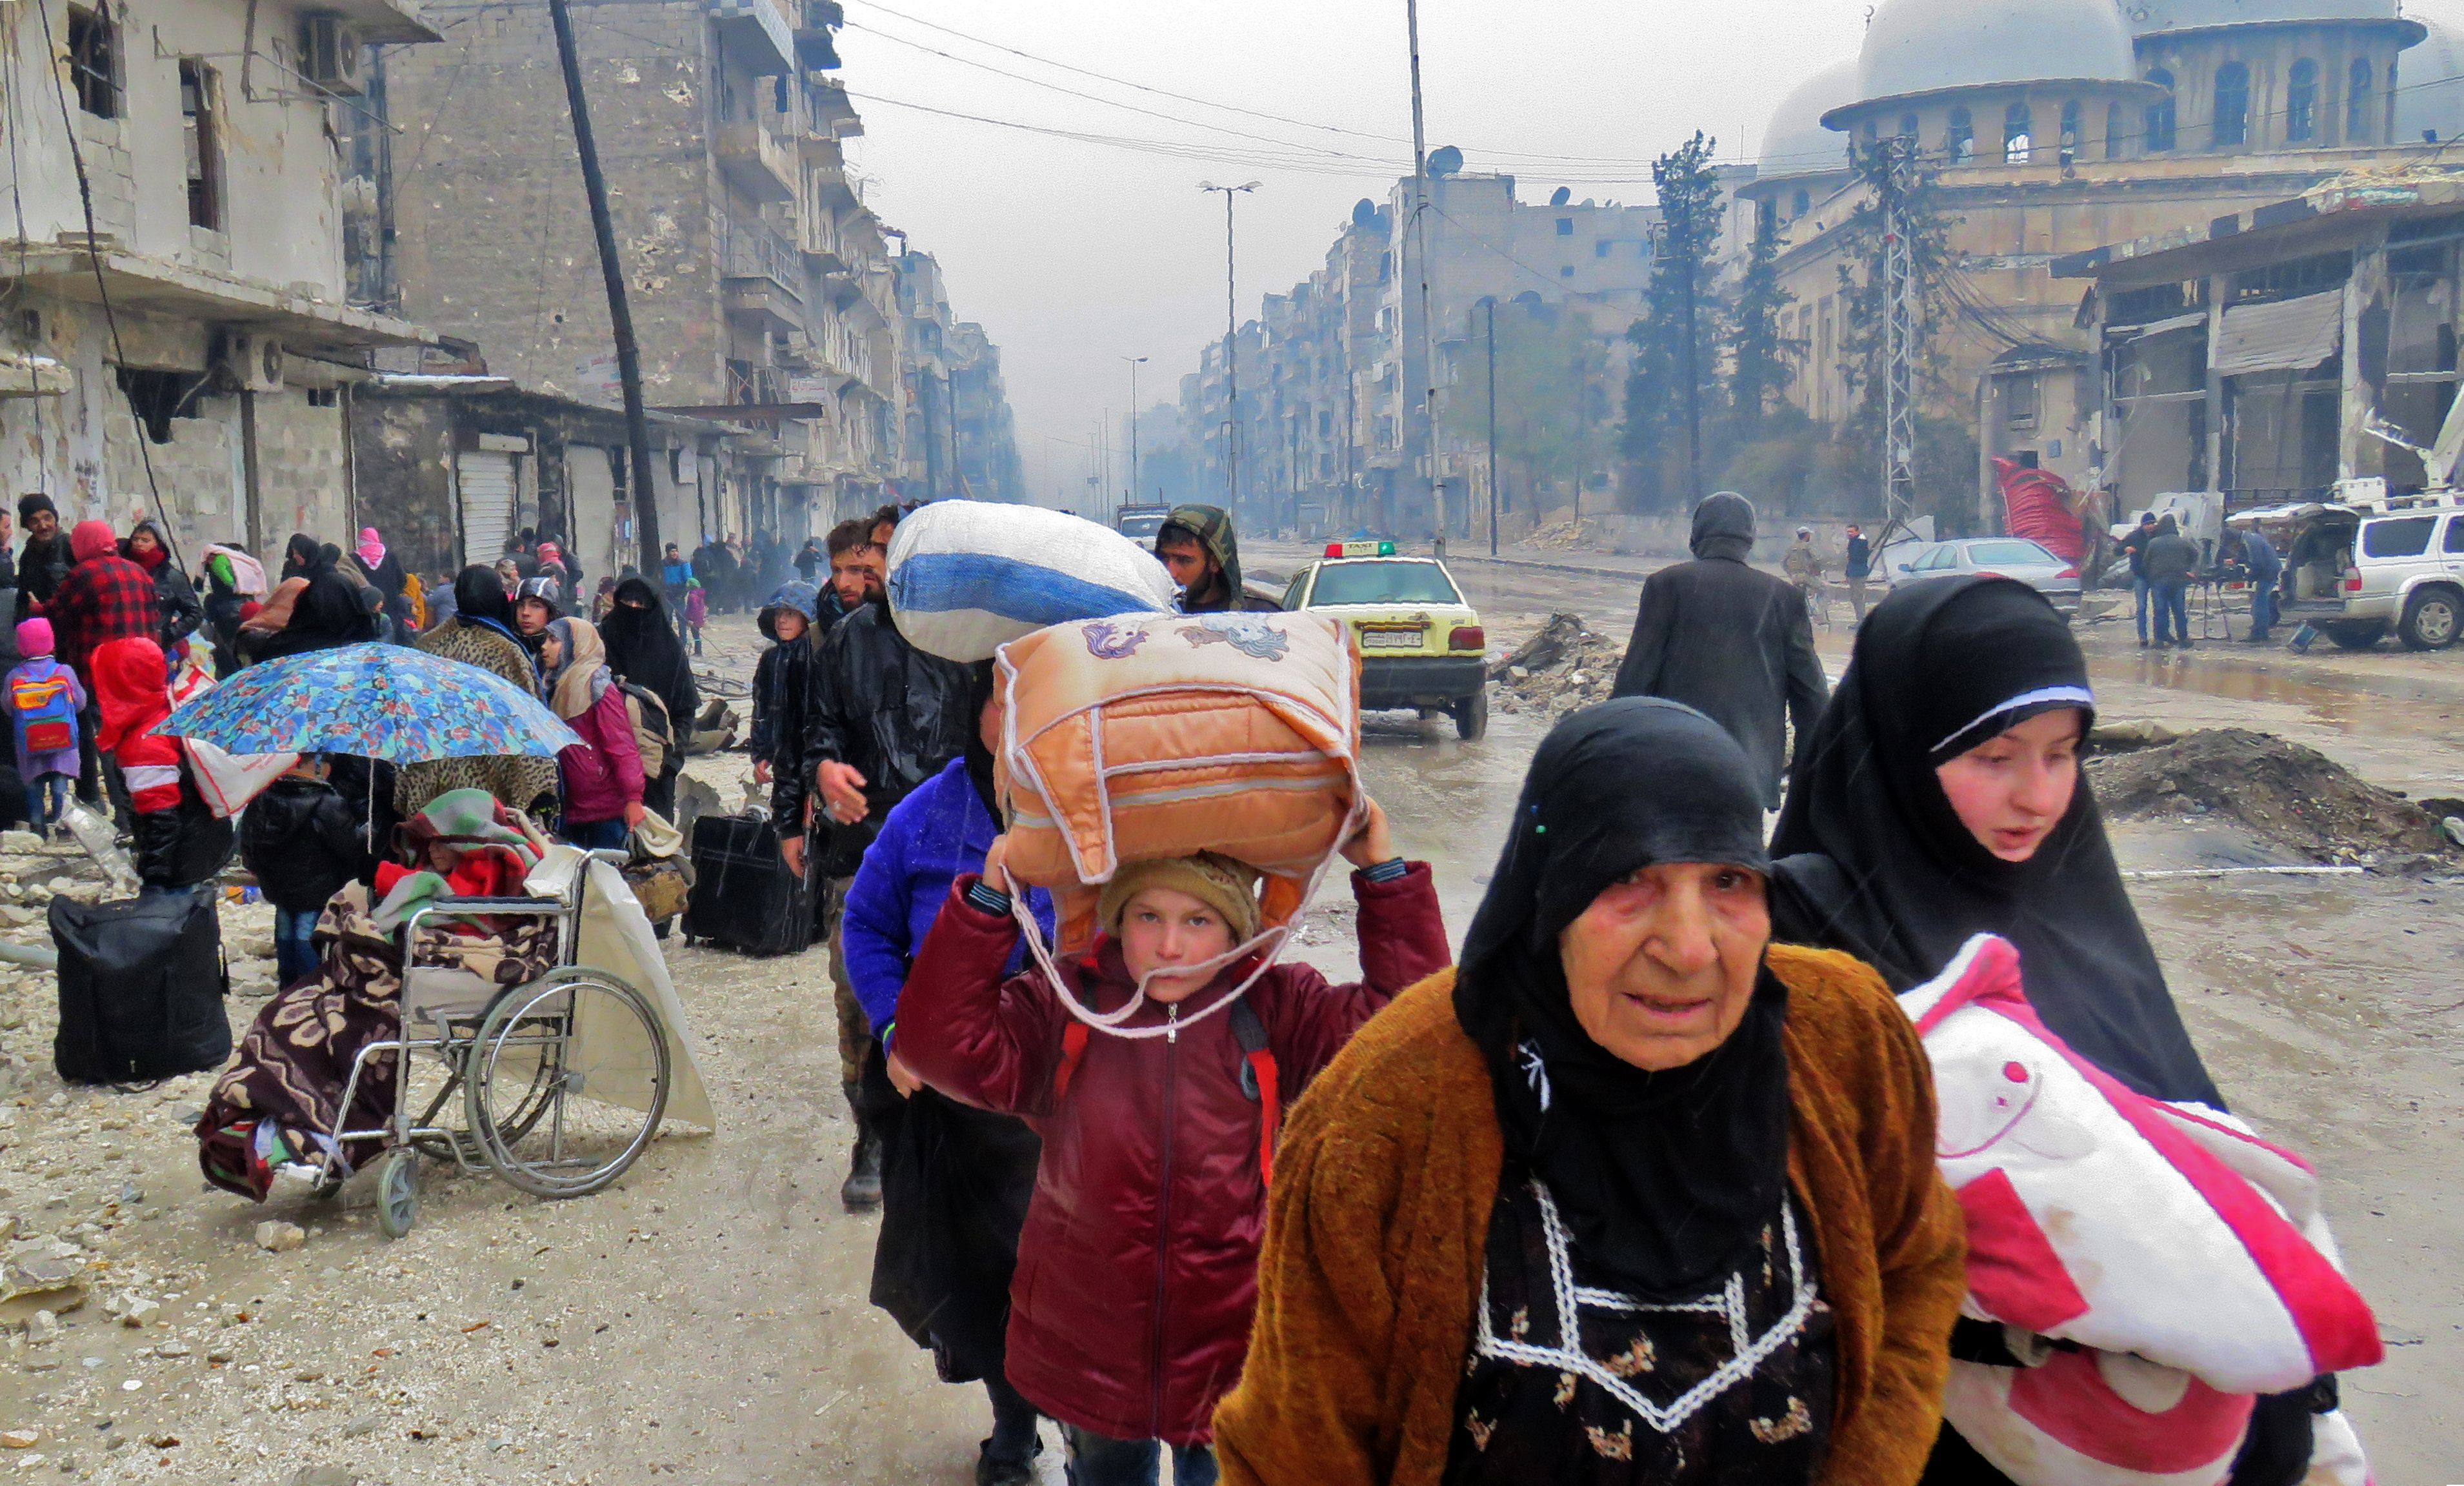 How people outside Syria can think about helping Syrians